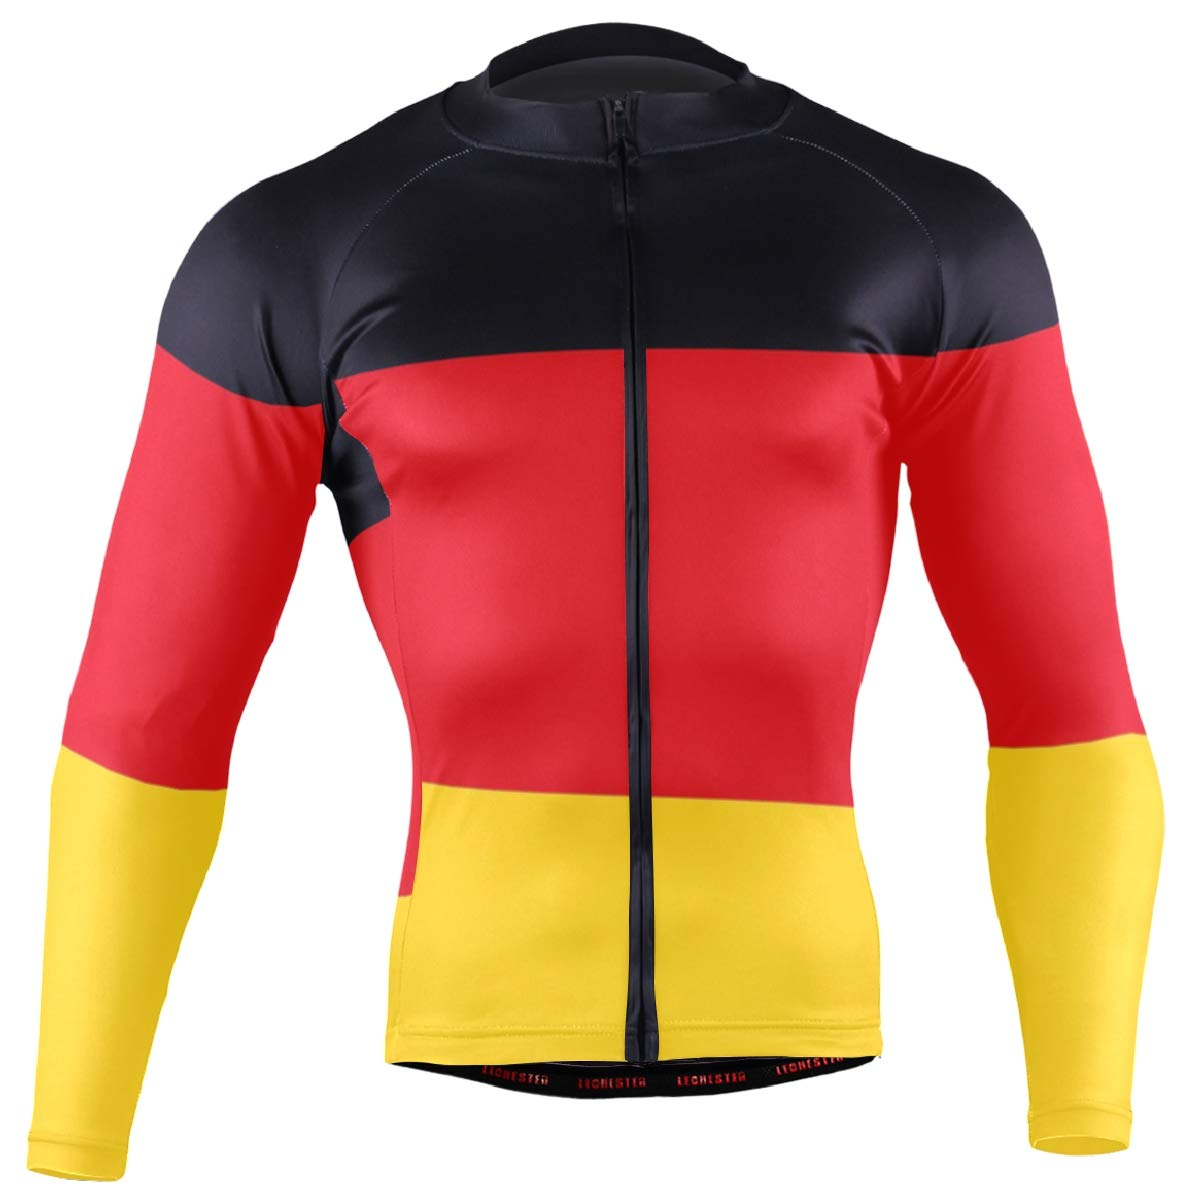 CHINEIN Men's Cycling Jersey Long Sleeve with 3 Rear Pockets Shirt German Flag by CHINEIN